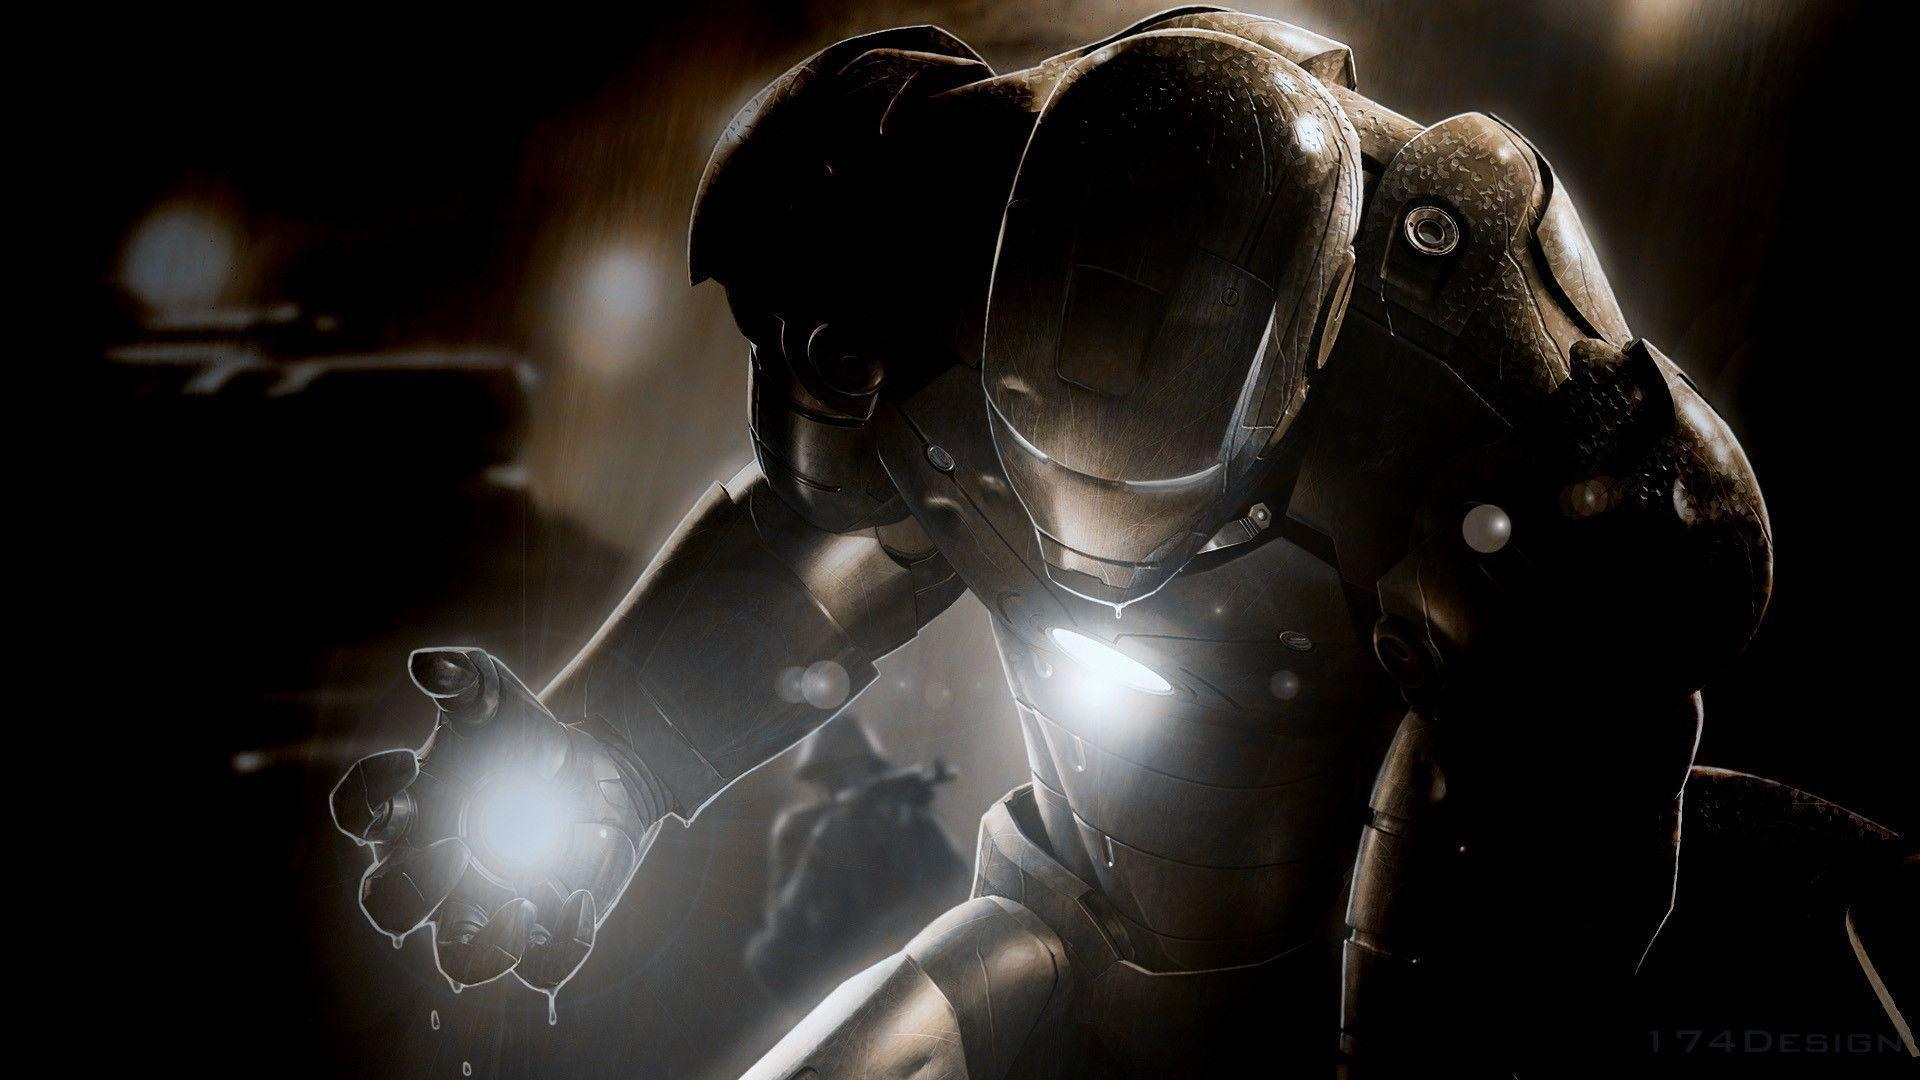 Iron Man 3 Suit wallpapers